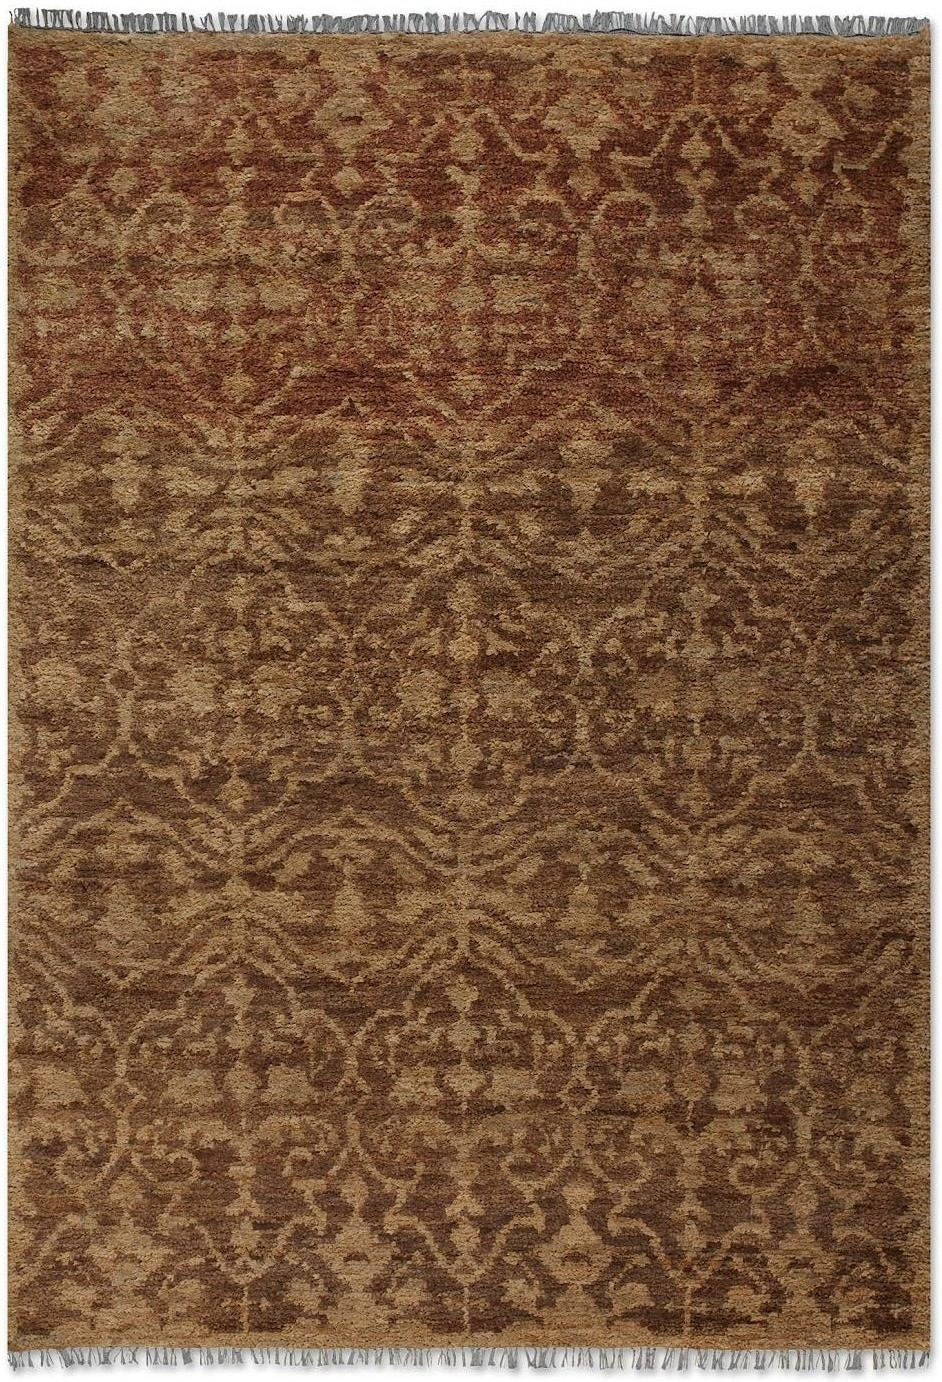 uttermost vallata contemporary area rug collection